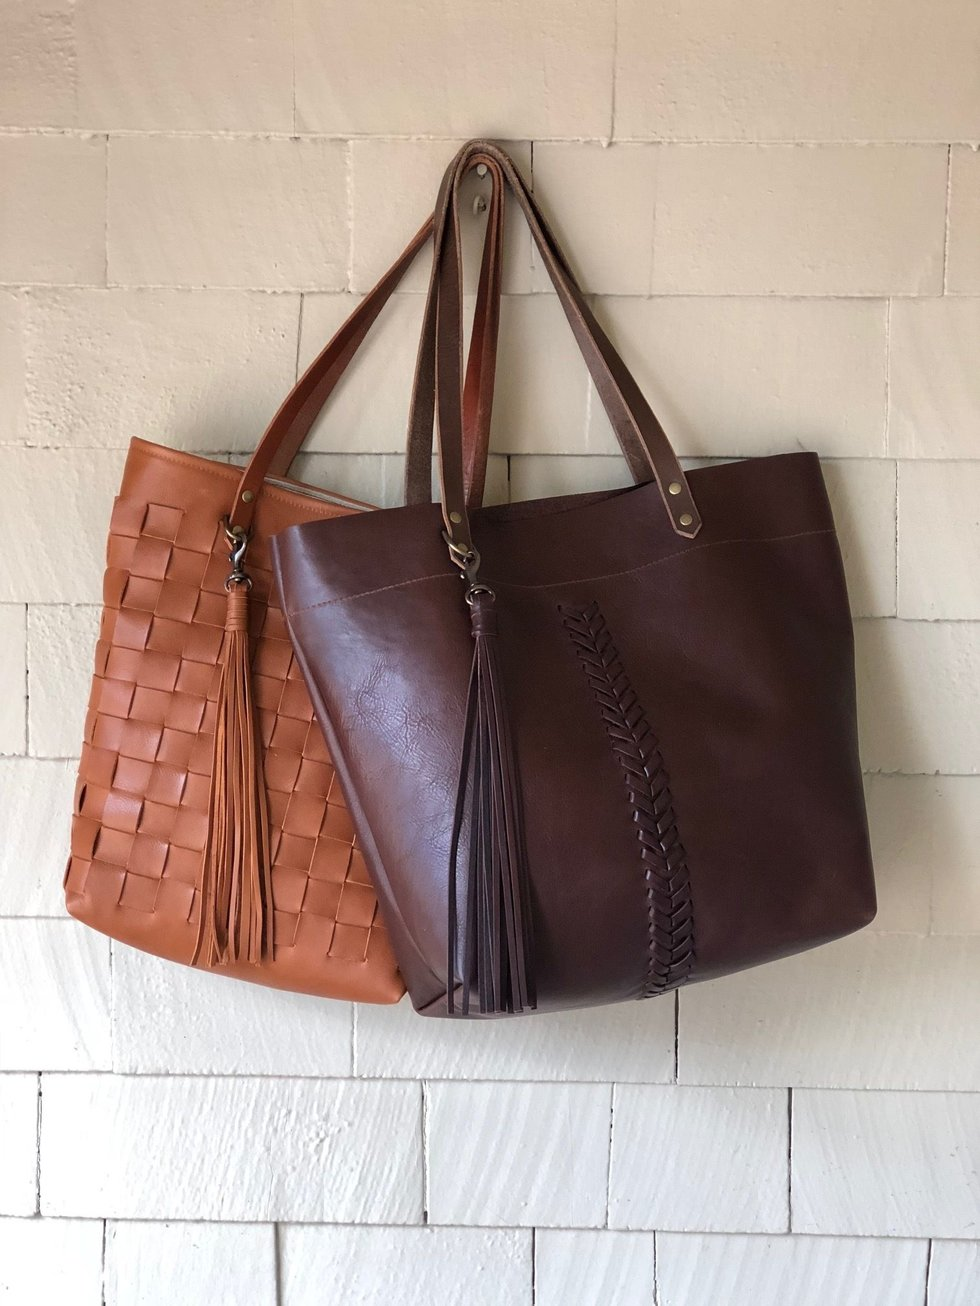 Leather bags at by elke at Pearl Street Mall in Boulder